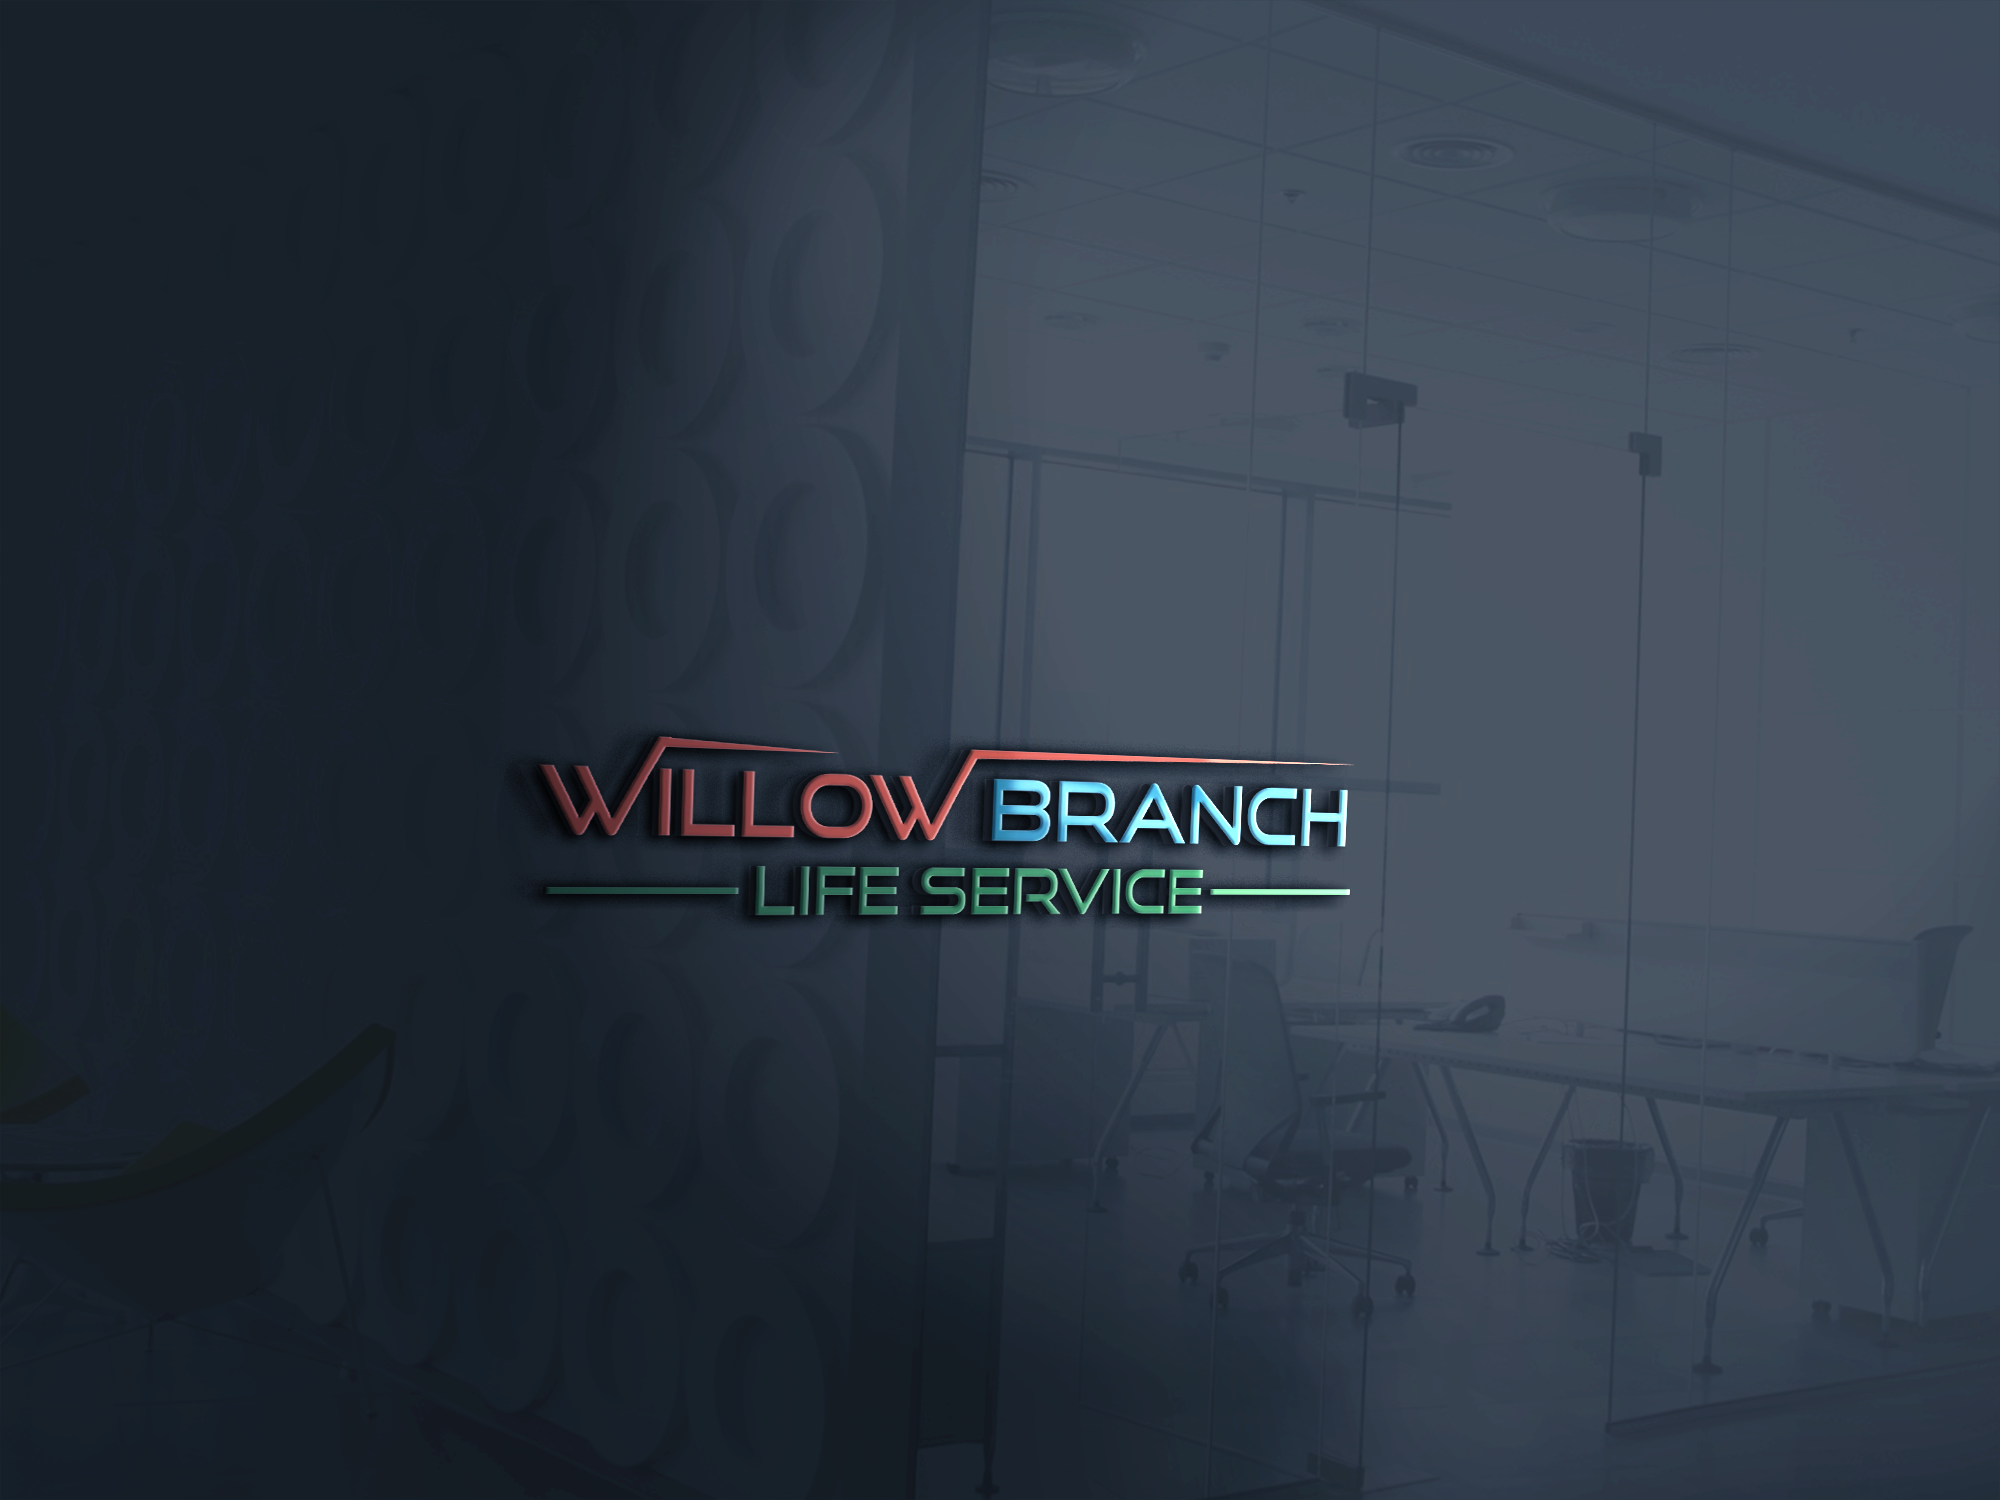 Logo Design by Prohor Ghagra - Entry No. 153 in the Logo Design Contest Artistic Logo Design for Willow Branch Life Service.